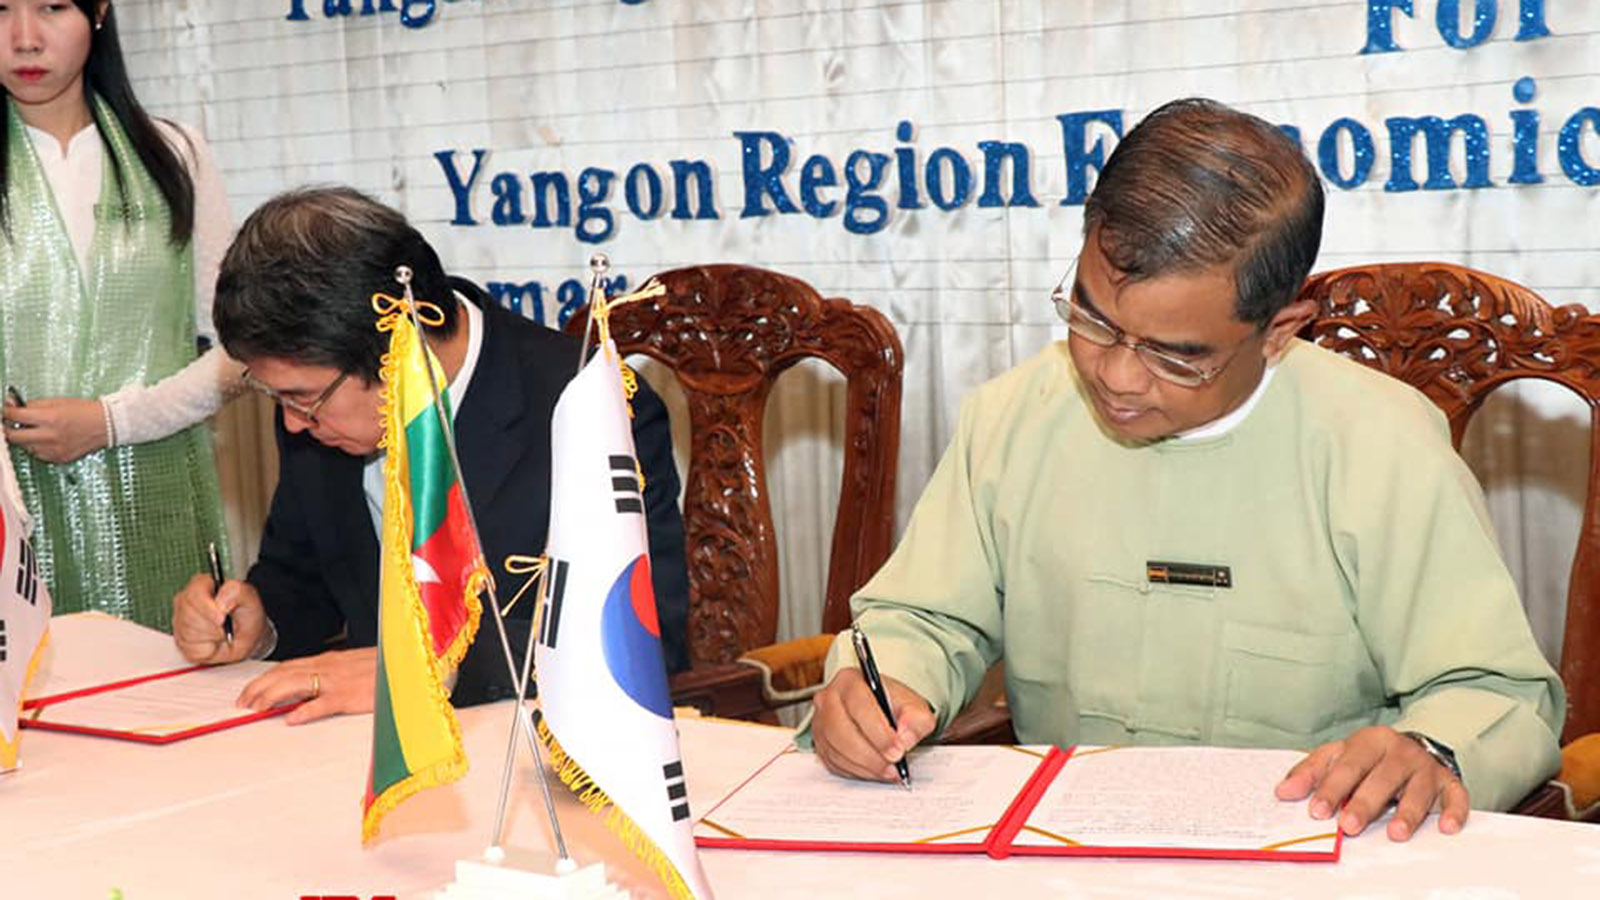 Yangon Regional Government and South Korea based company, Myanmar Wooree Company signed a MOU for Yangon Region Economic Development project to improve businesses in the commercial city of Yangon